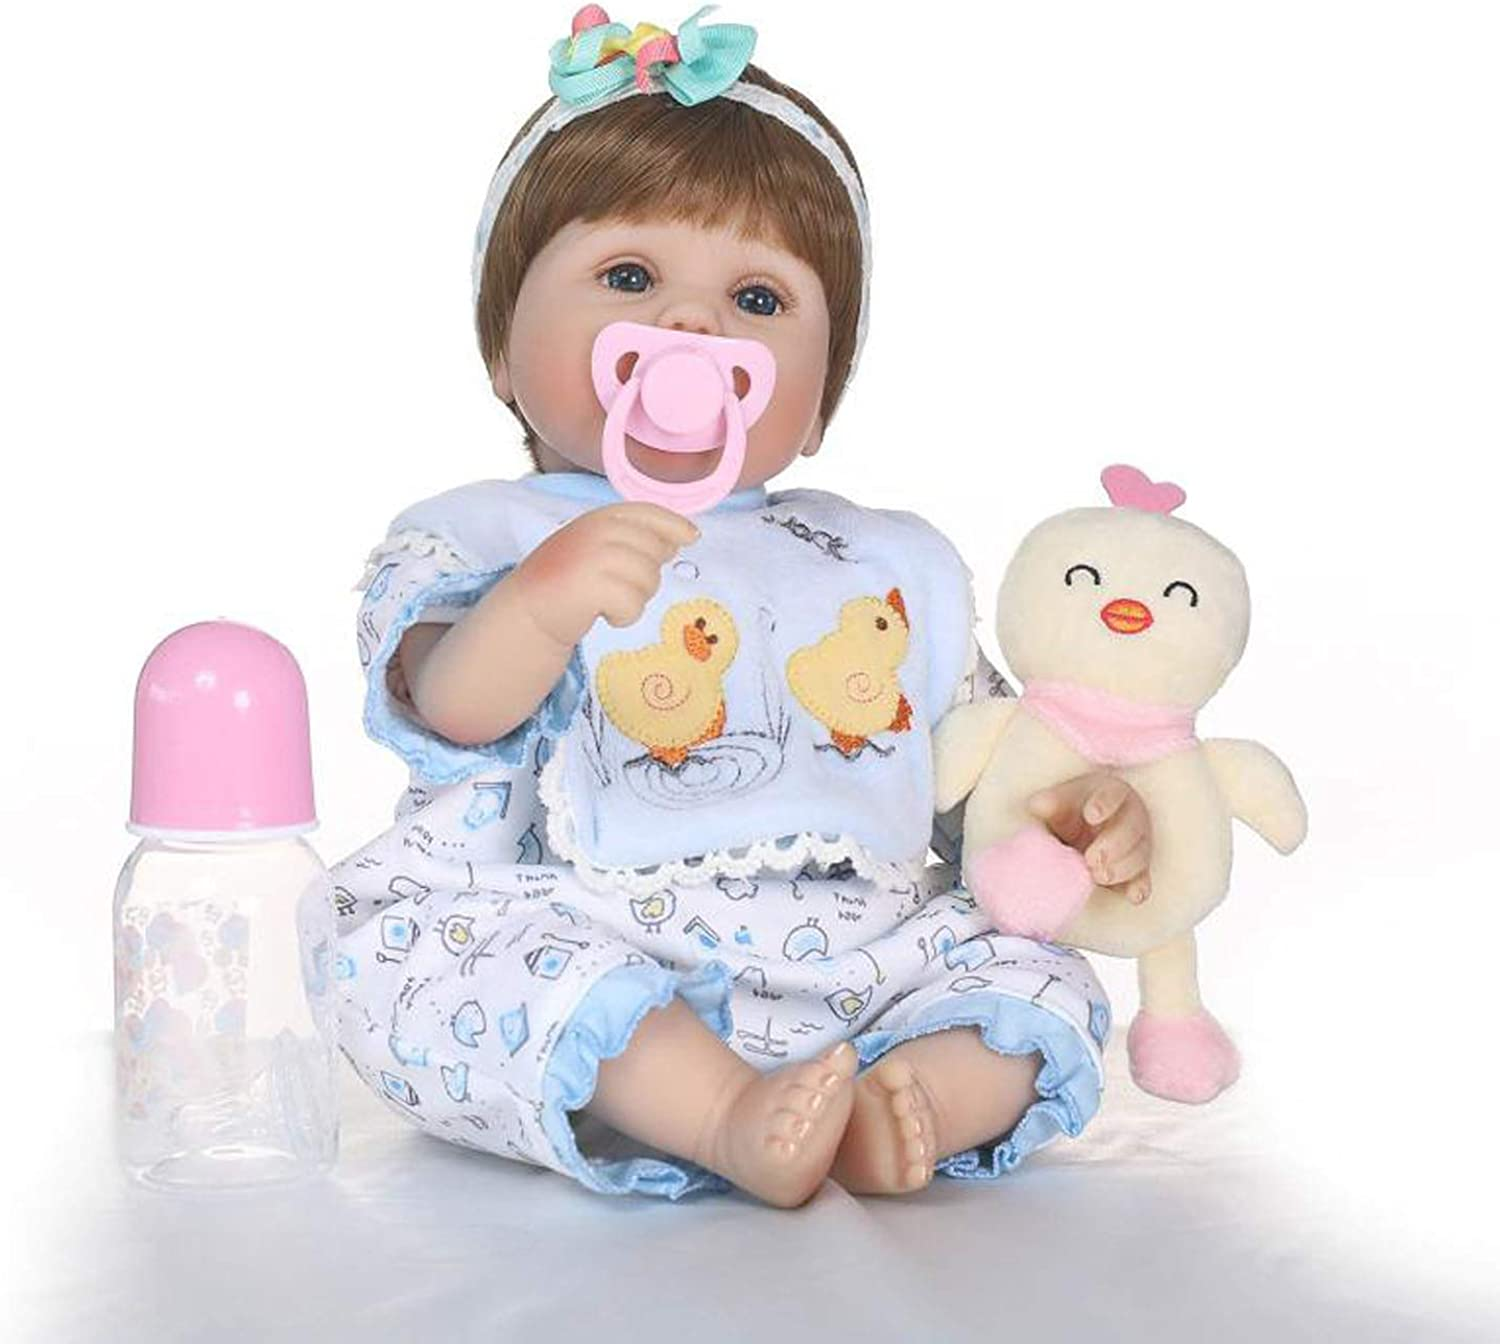 Terabithia 16 inch Cute Reborn Baby Girl Dolls with Accessories Travel Cot